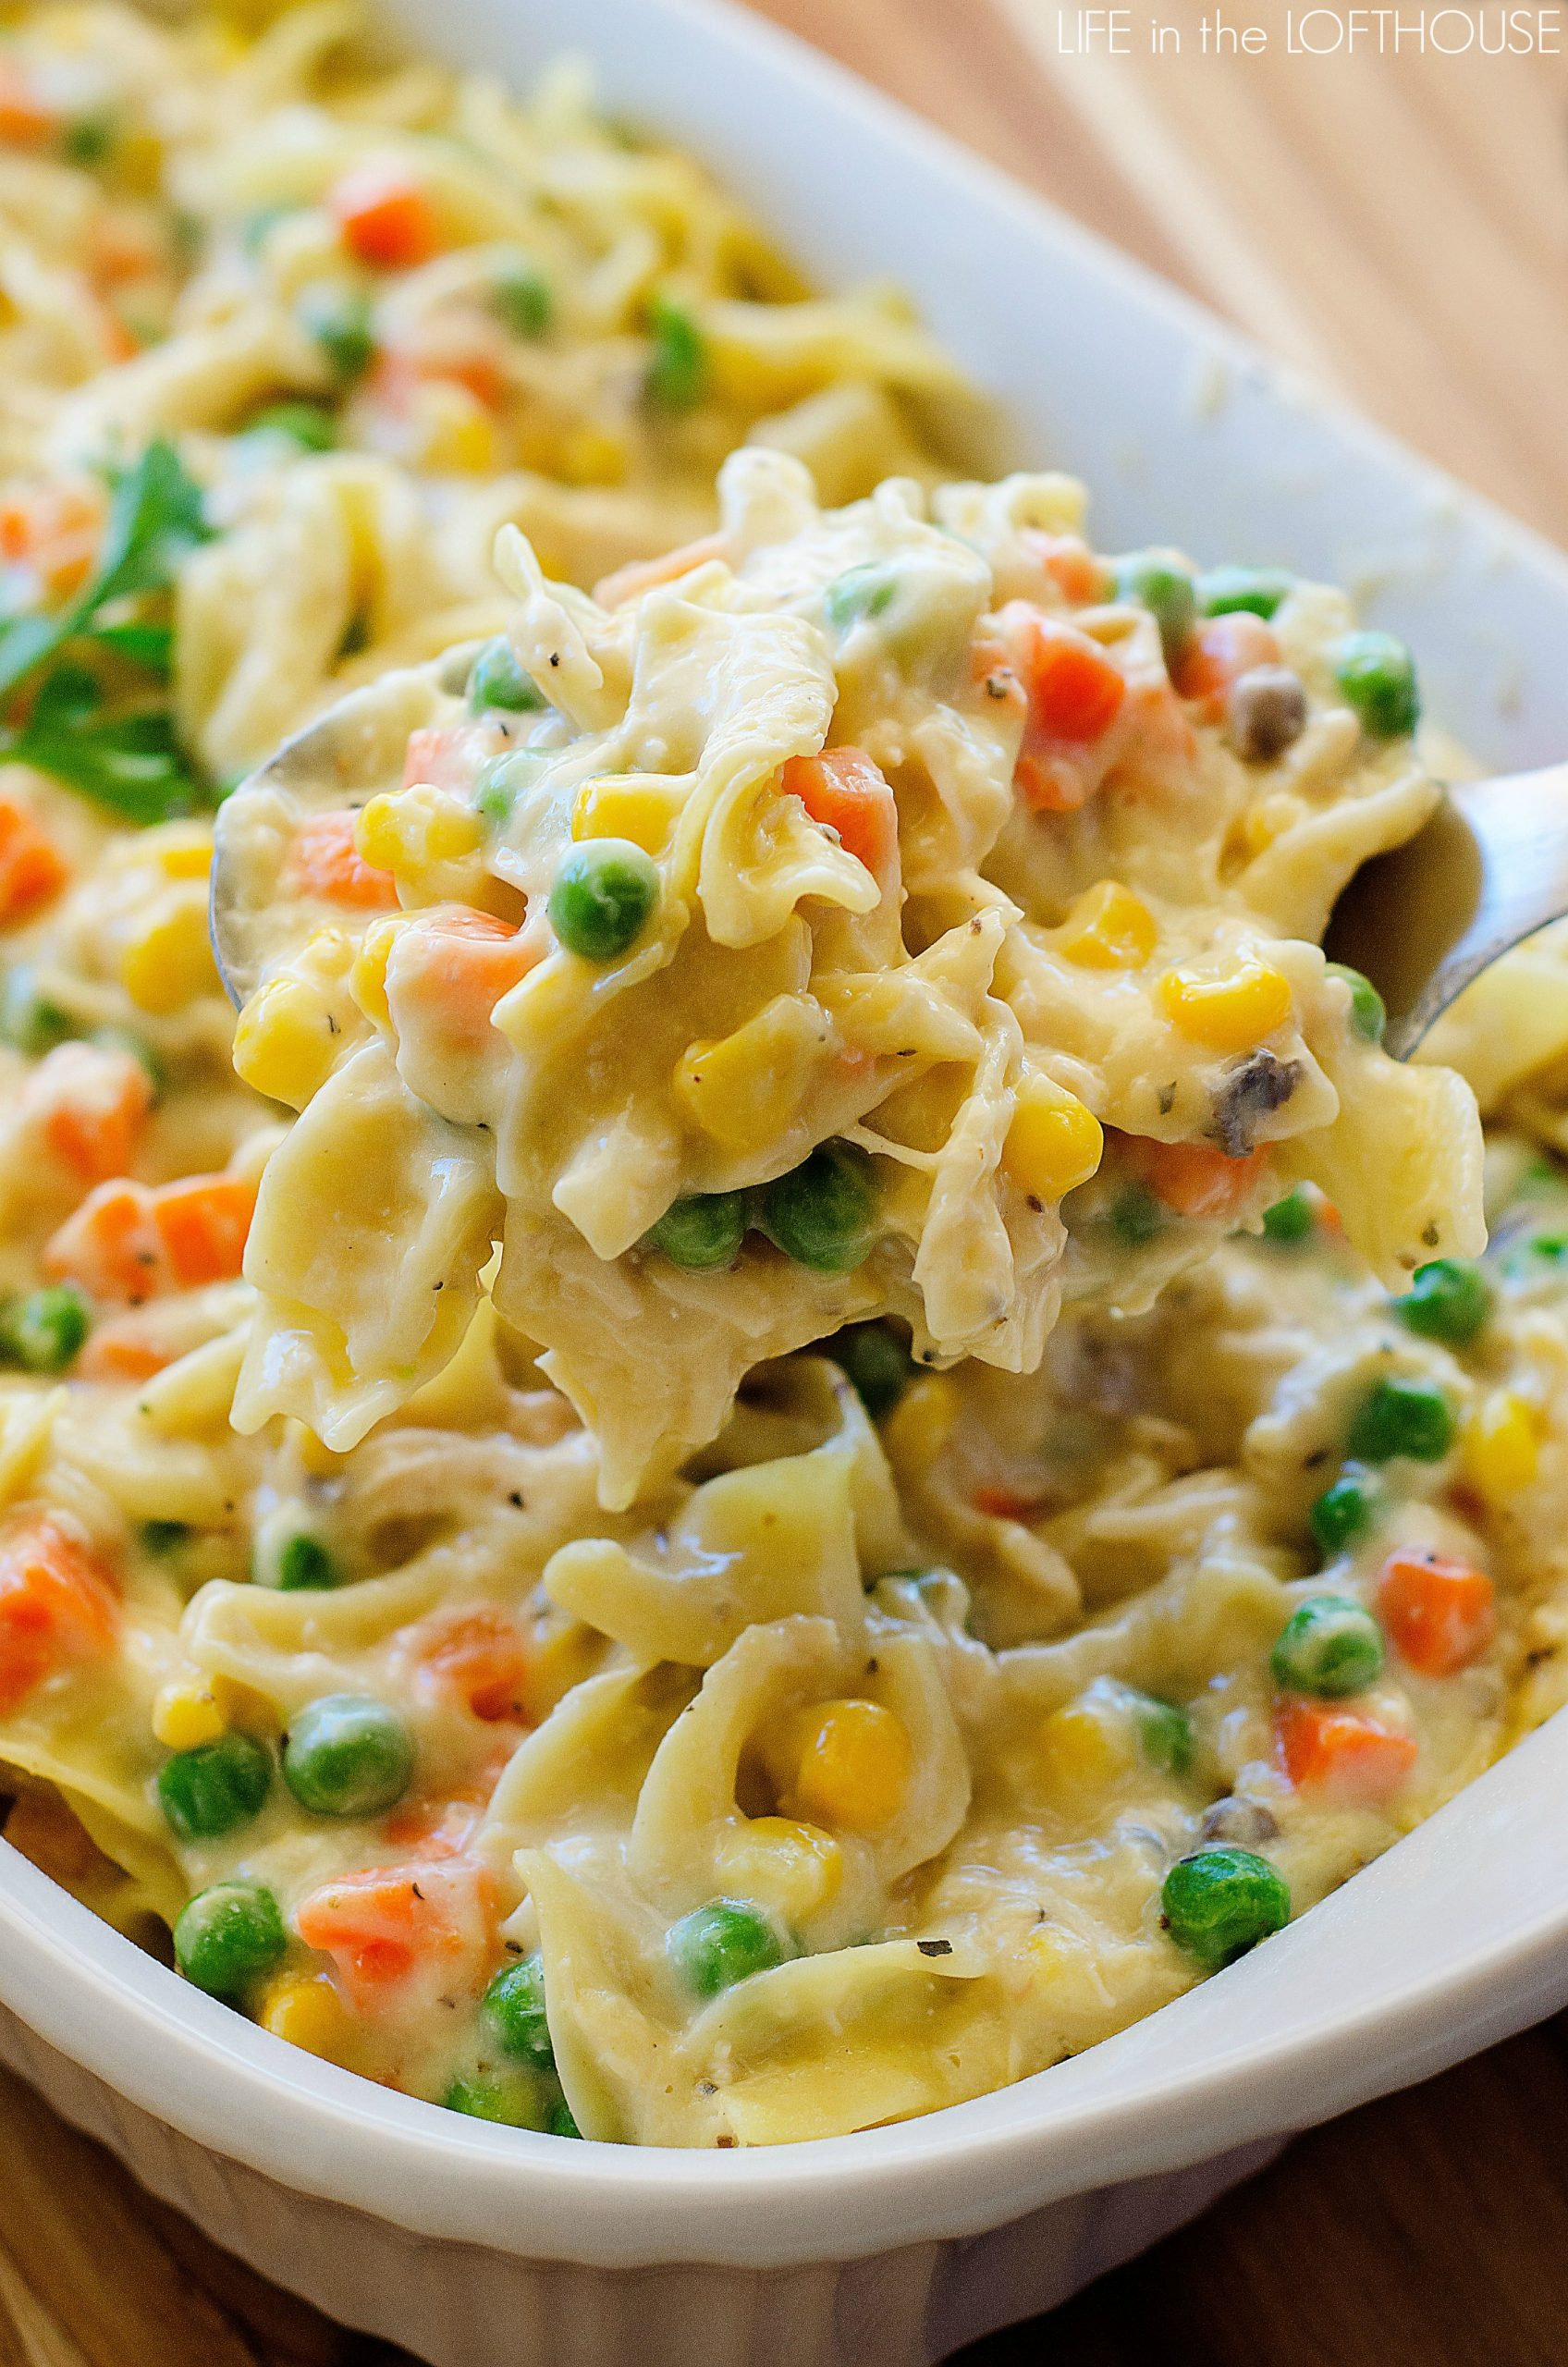 Chicken noodle casserole1 for Life in the lofthouse